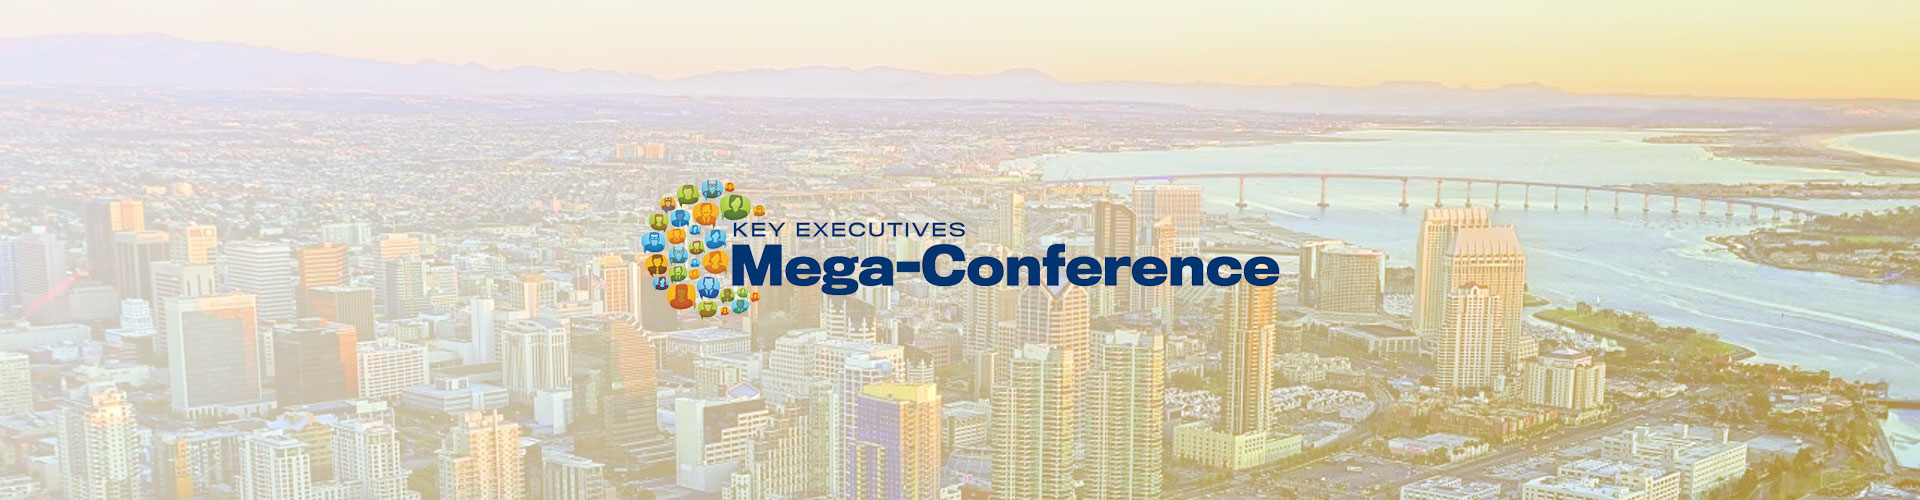 PageSuite to Exhibit at the Mega-Conference